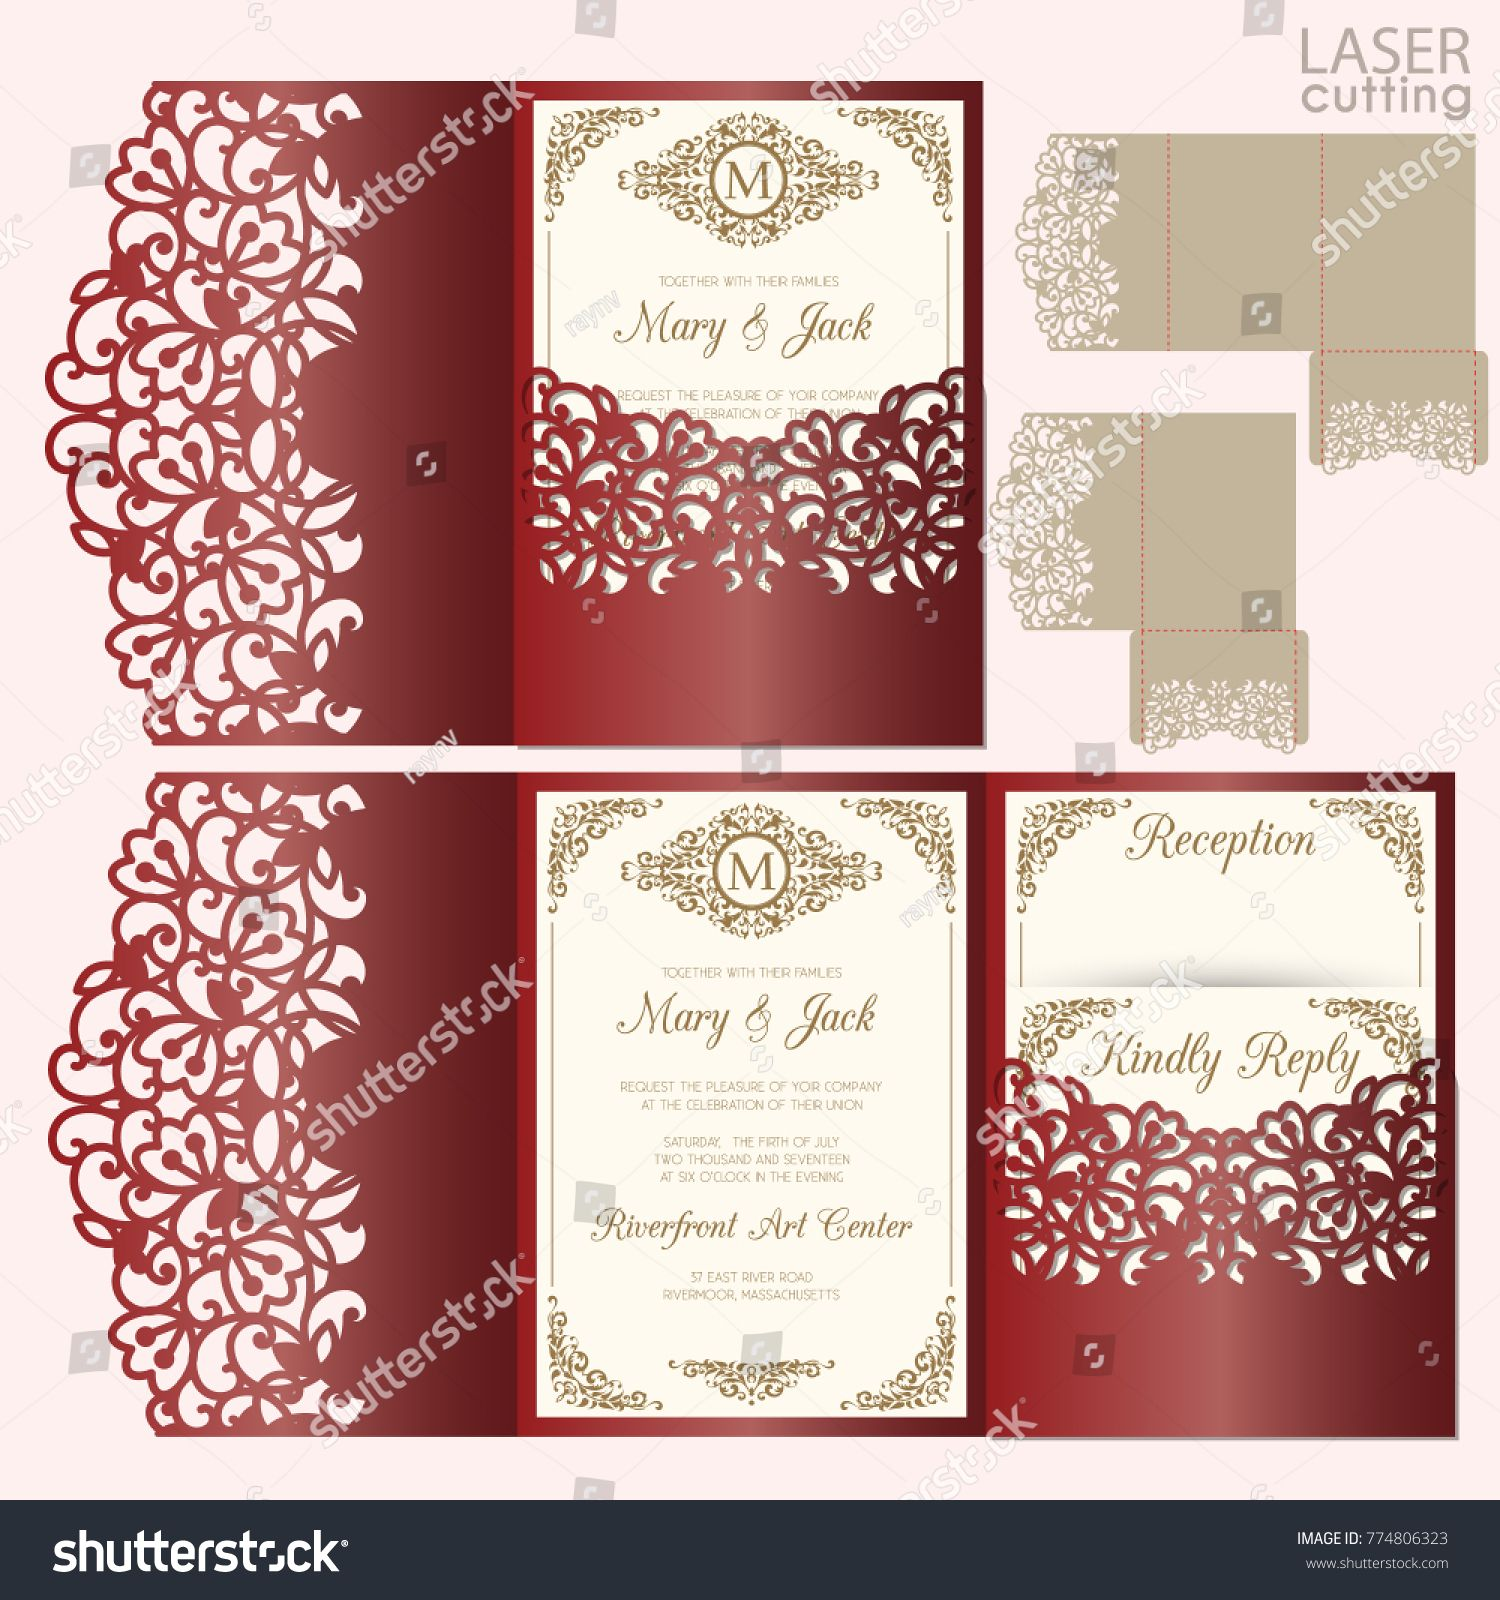 Die laser cut wedding card vector template. Invitation envelope ...